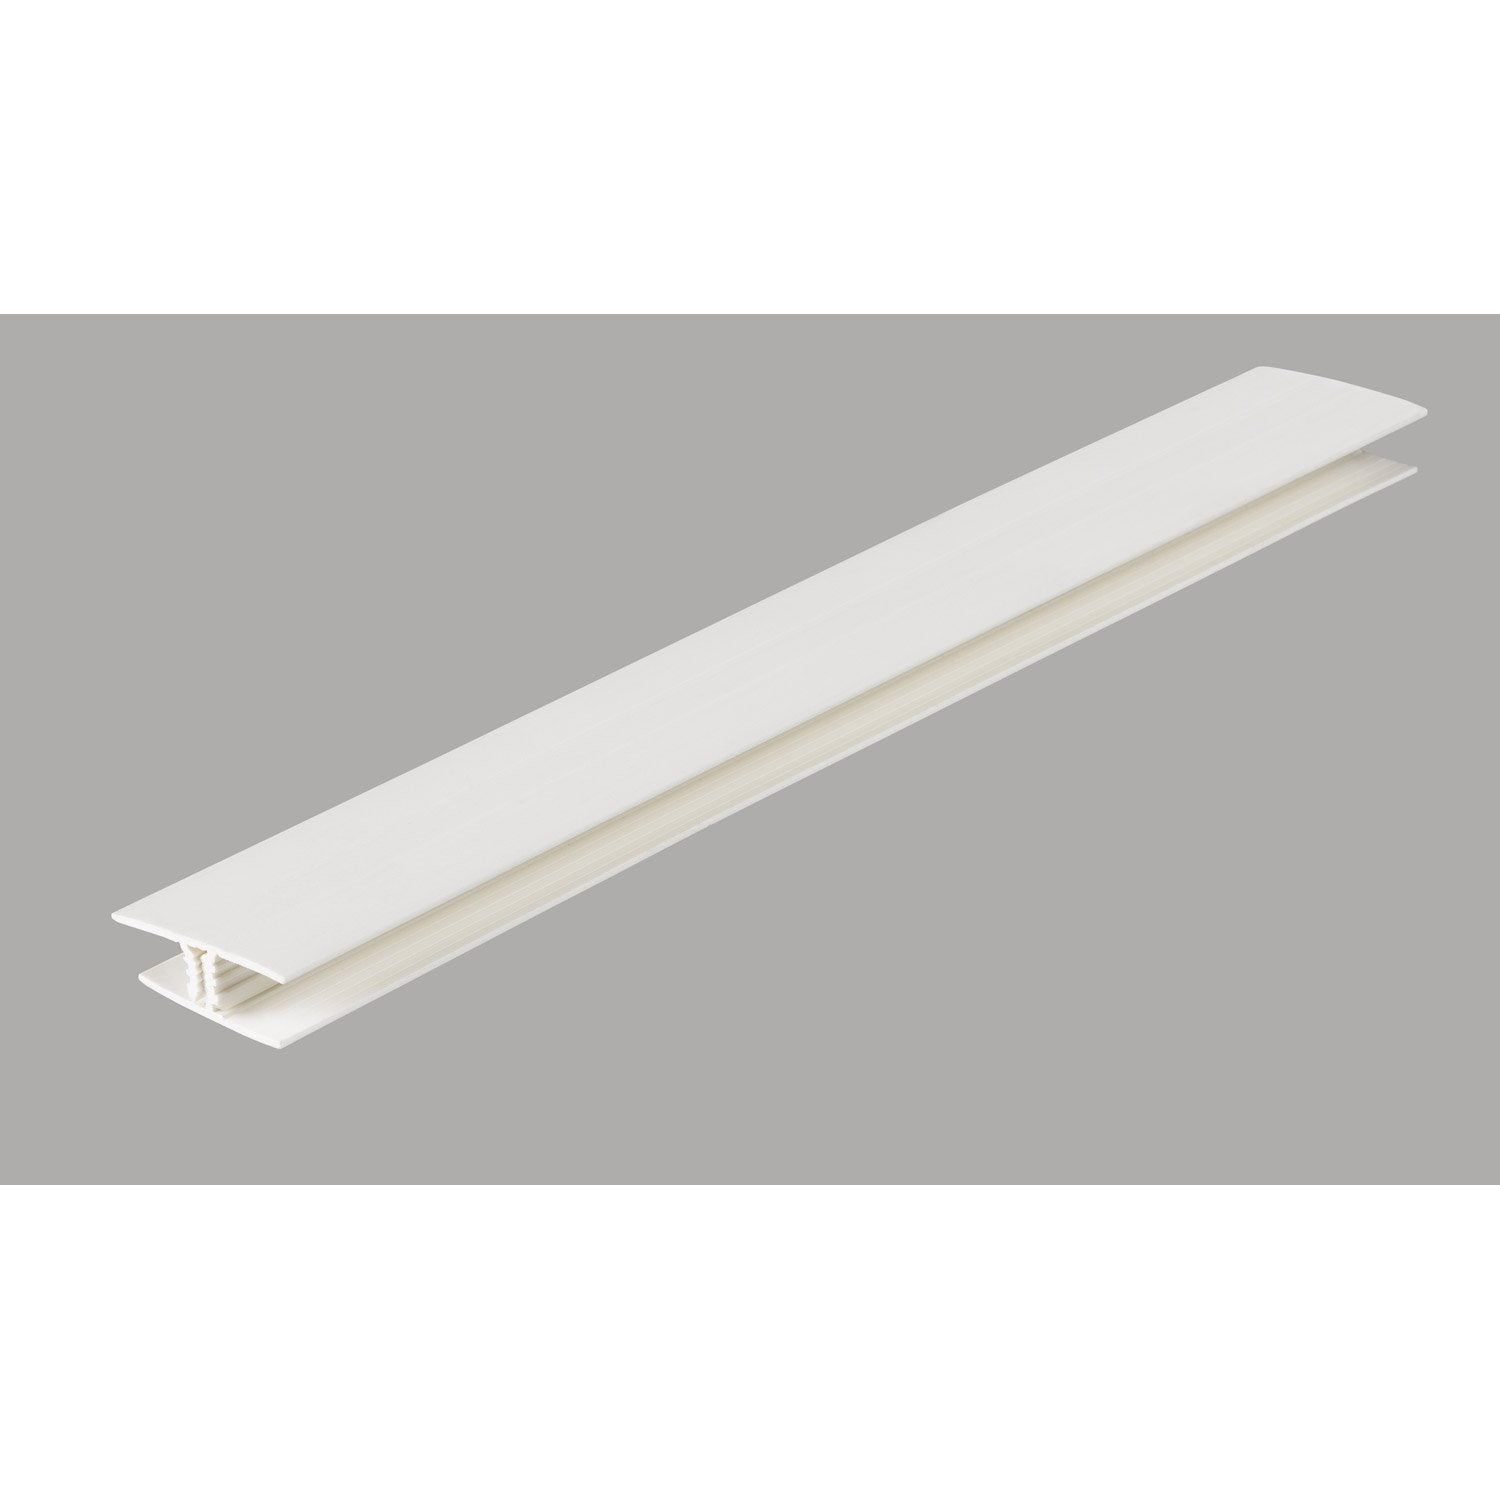 Profil de finition pour lambris pvc 5 5 x 1 2 cm l 2 6 m for Pose d un lambris pvc au plafond